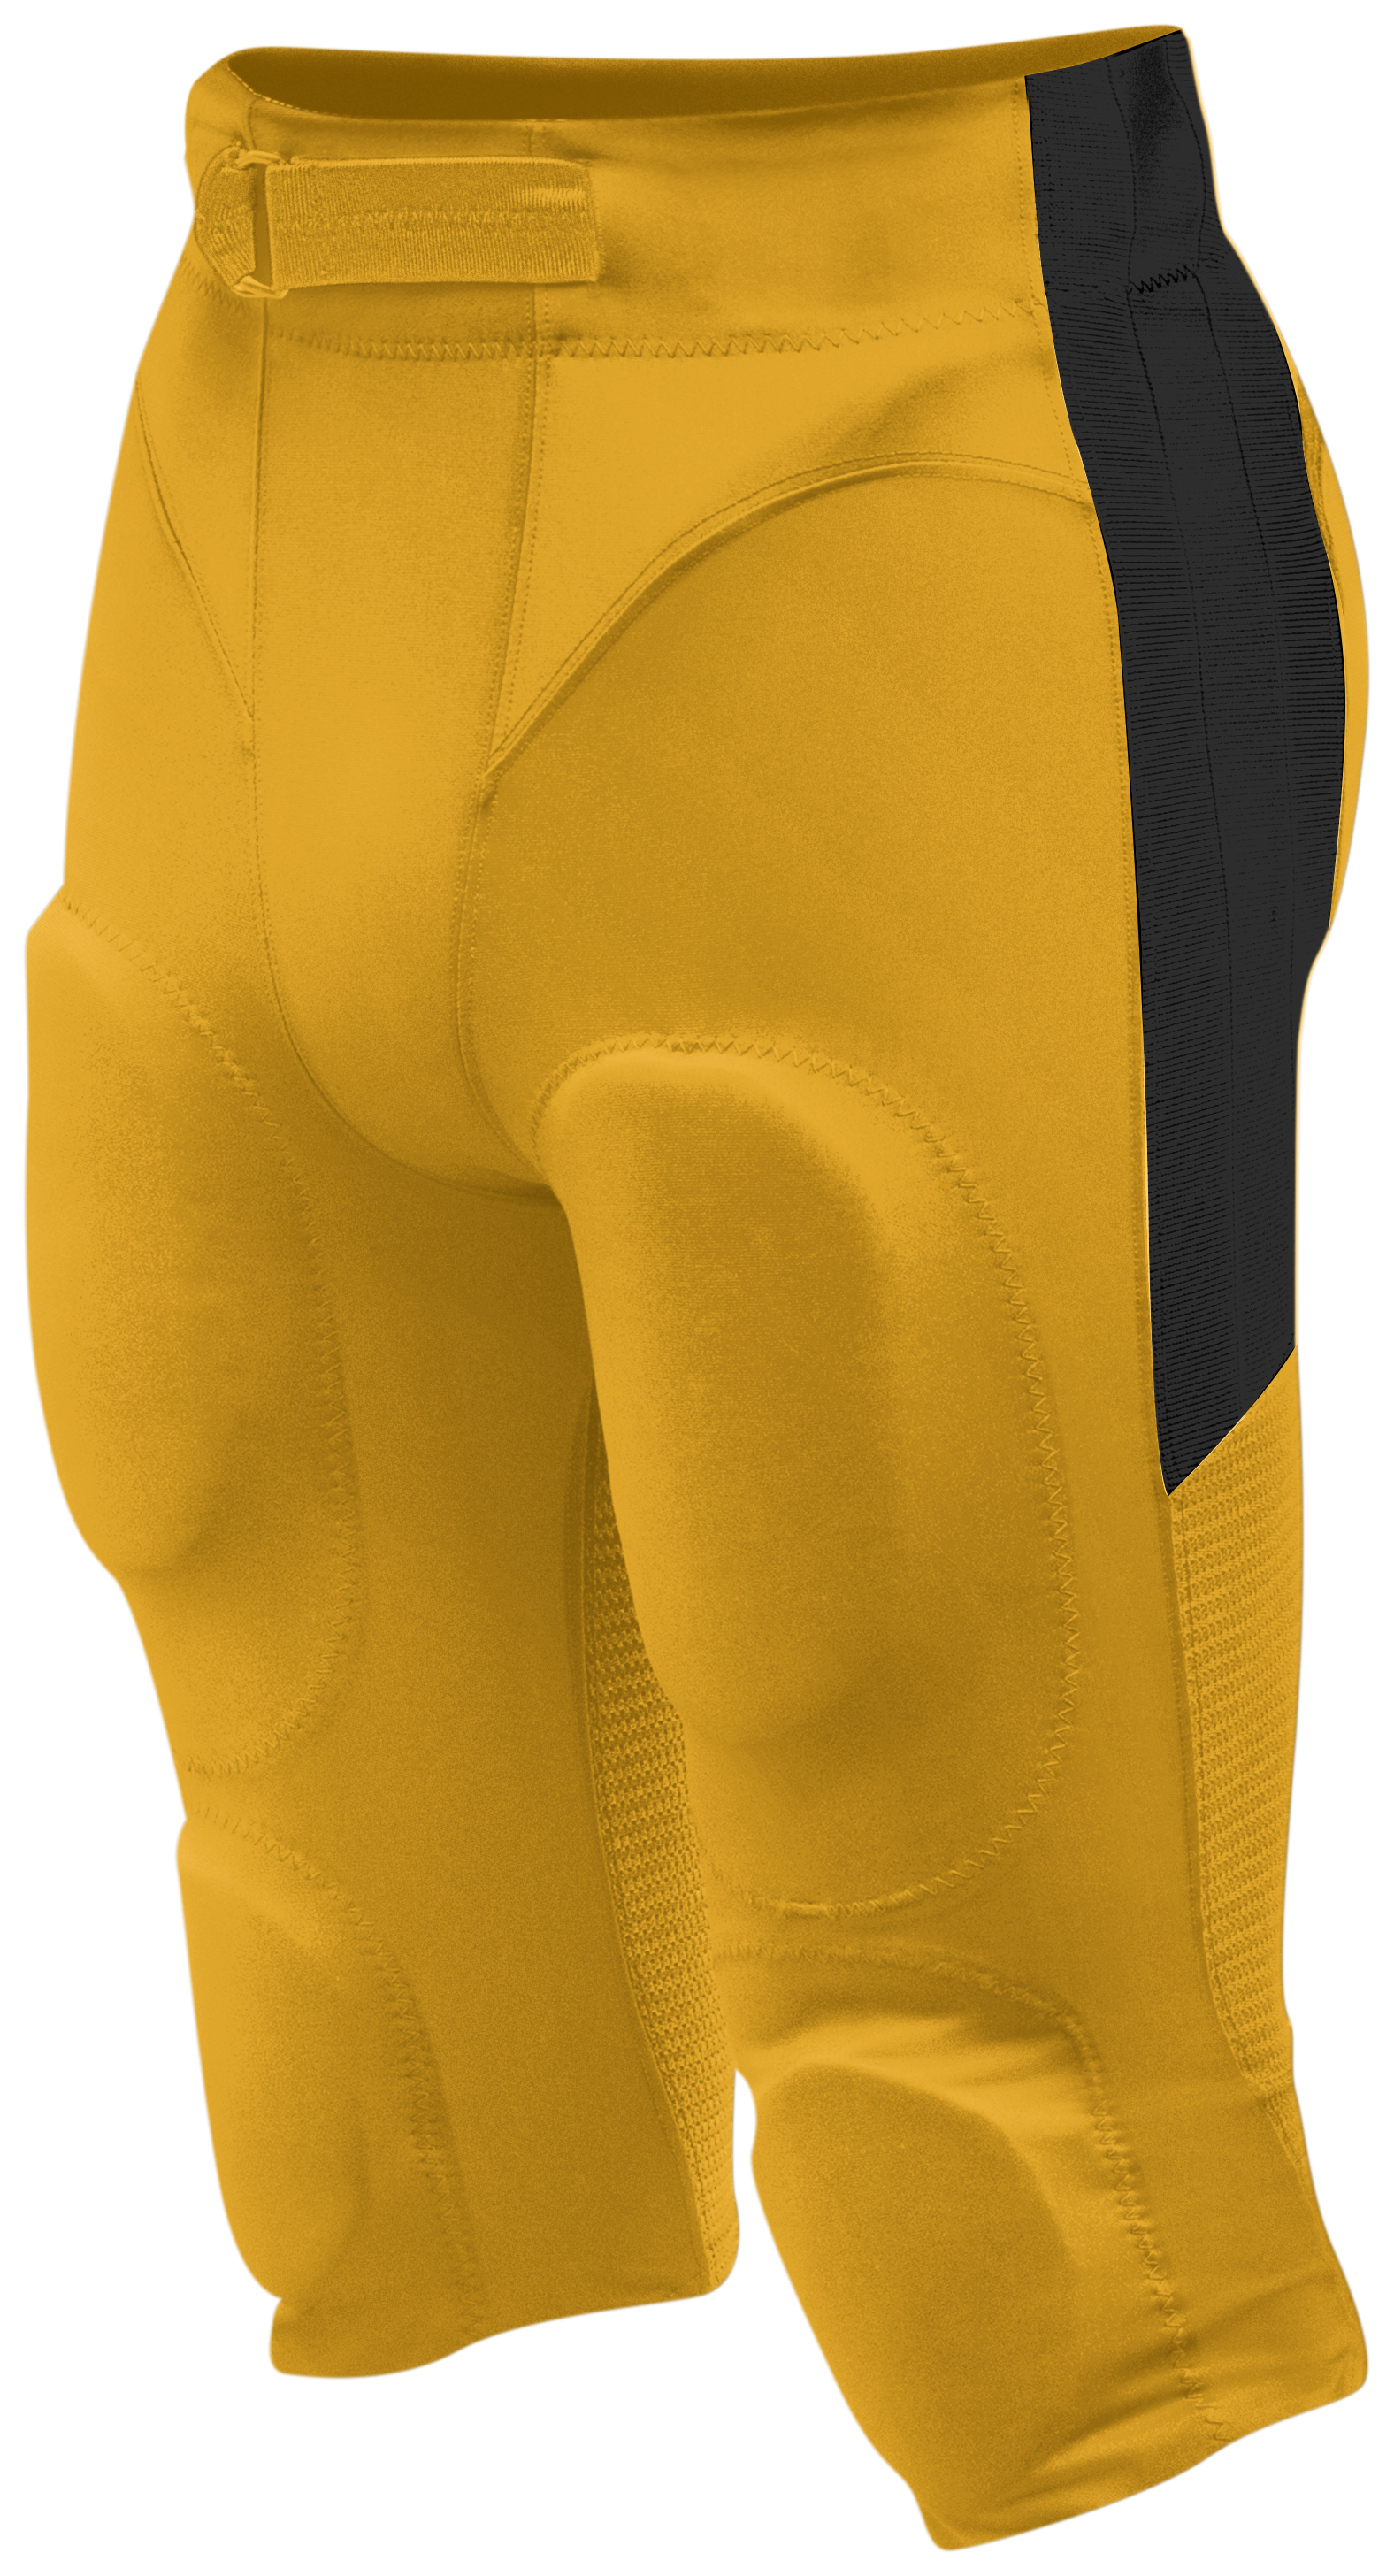 Russell Athletic Blitz Football - Overload Pants